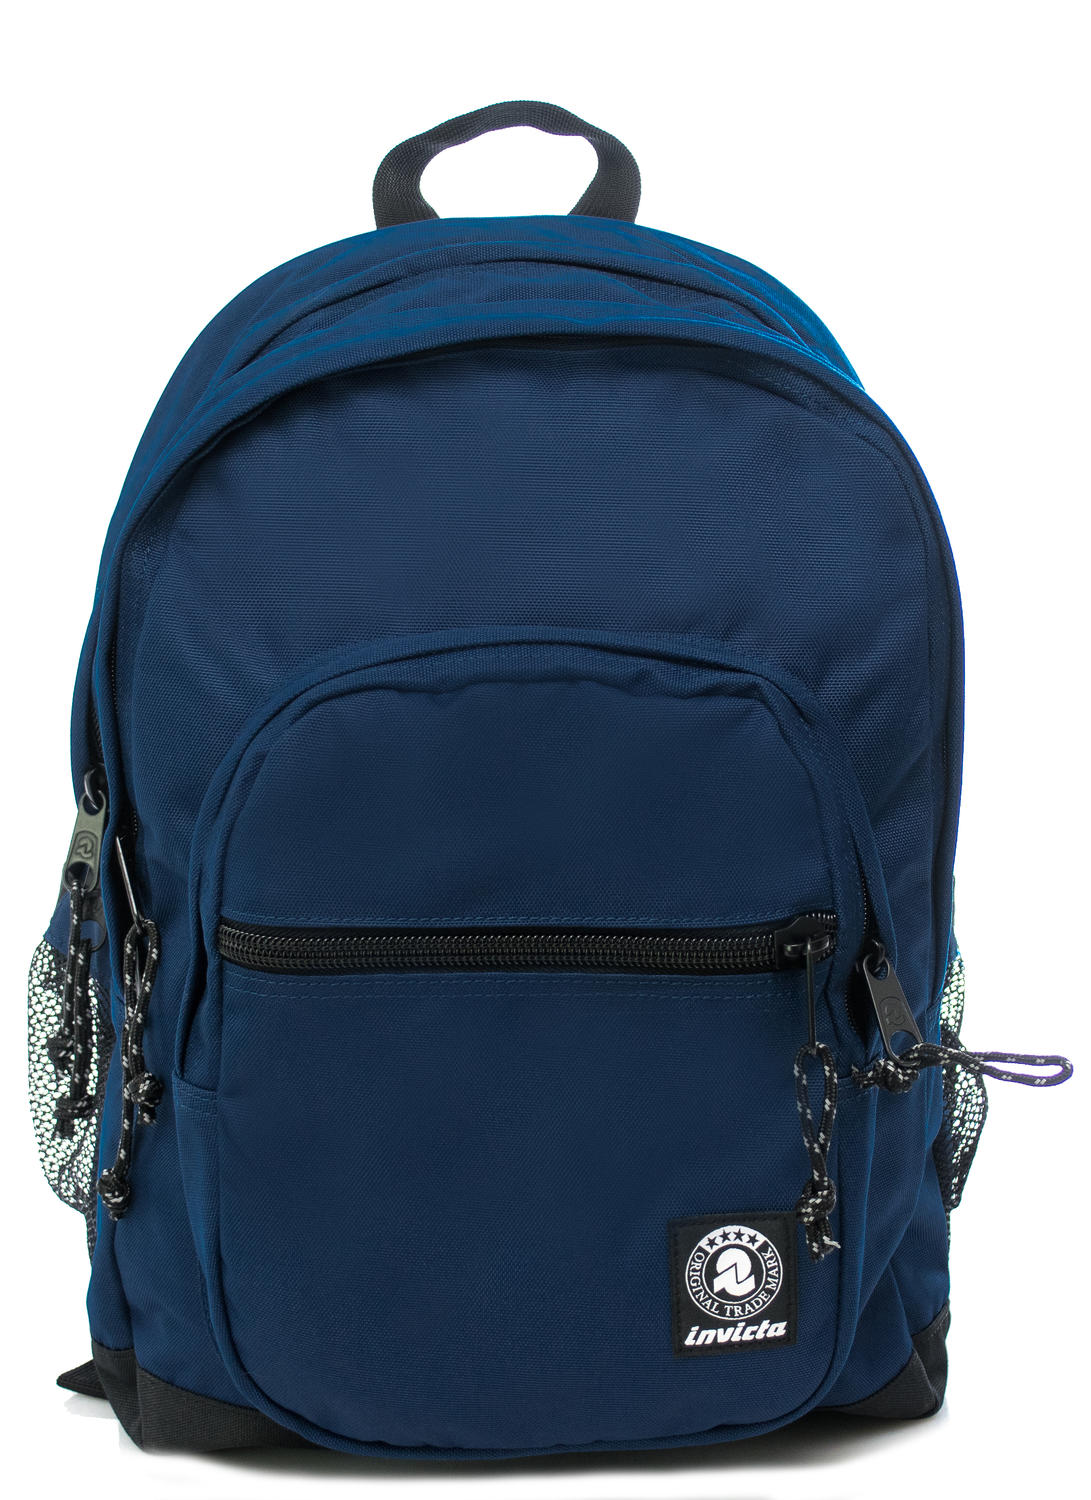 "Backpacks & School and Leisure - backpack JELEK PLAIN model, 13"" PC case"